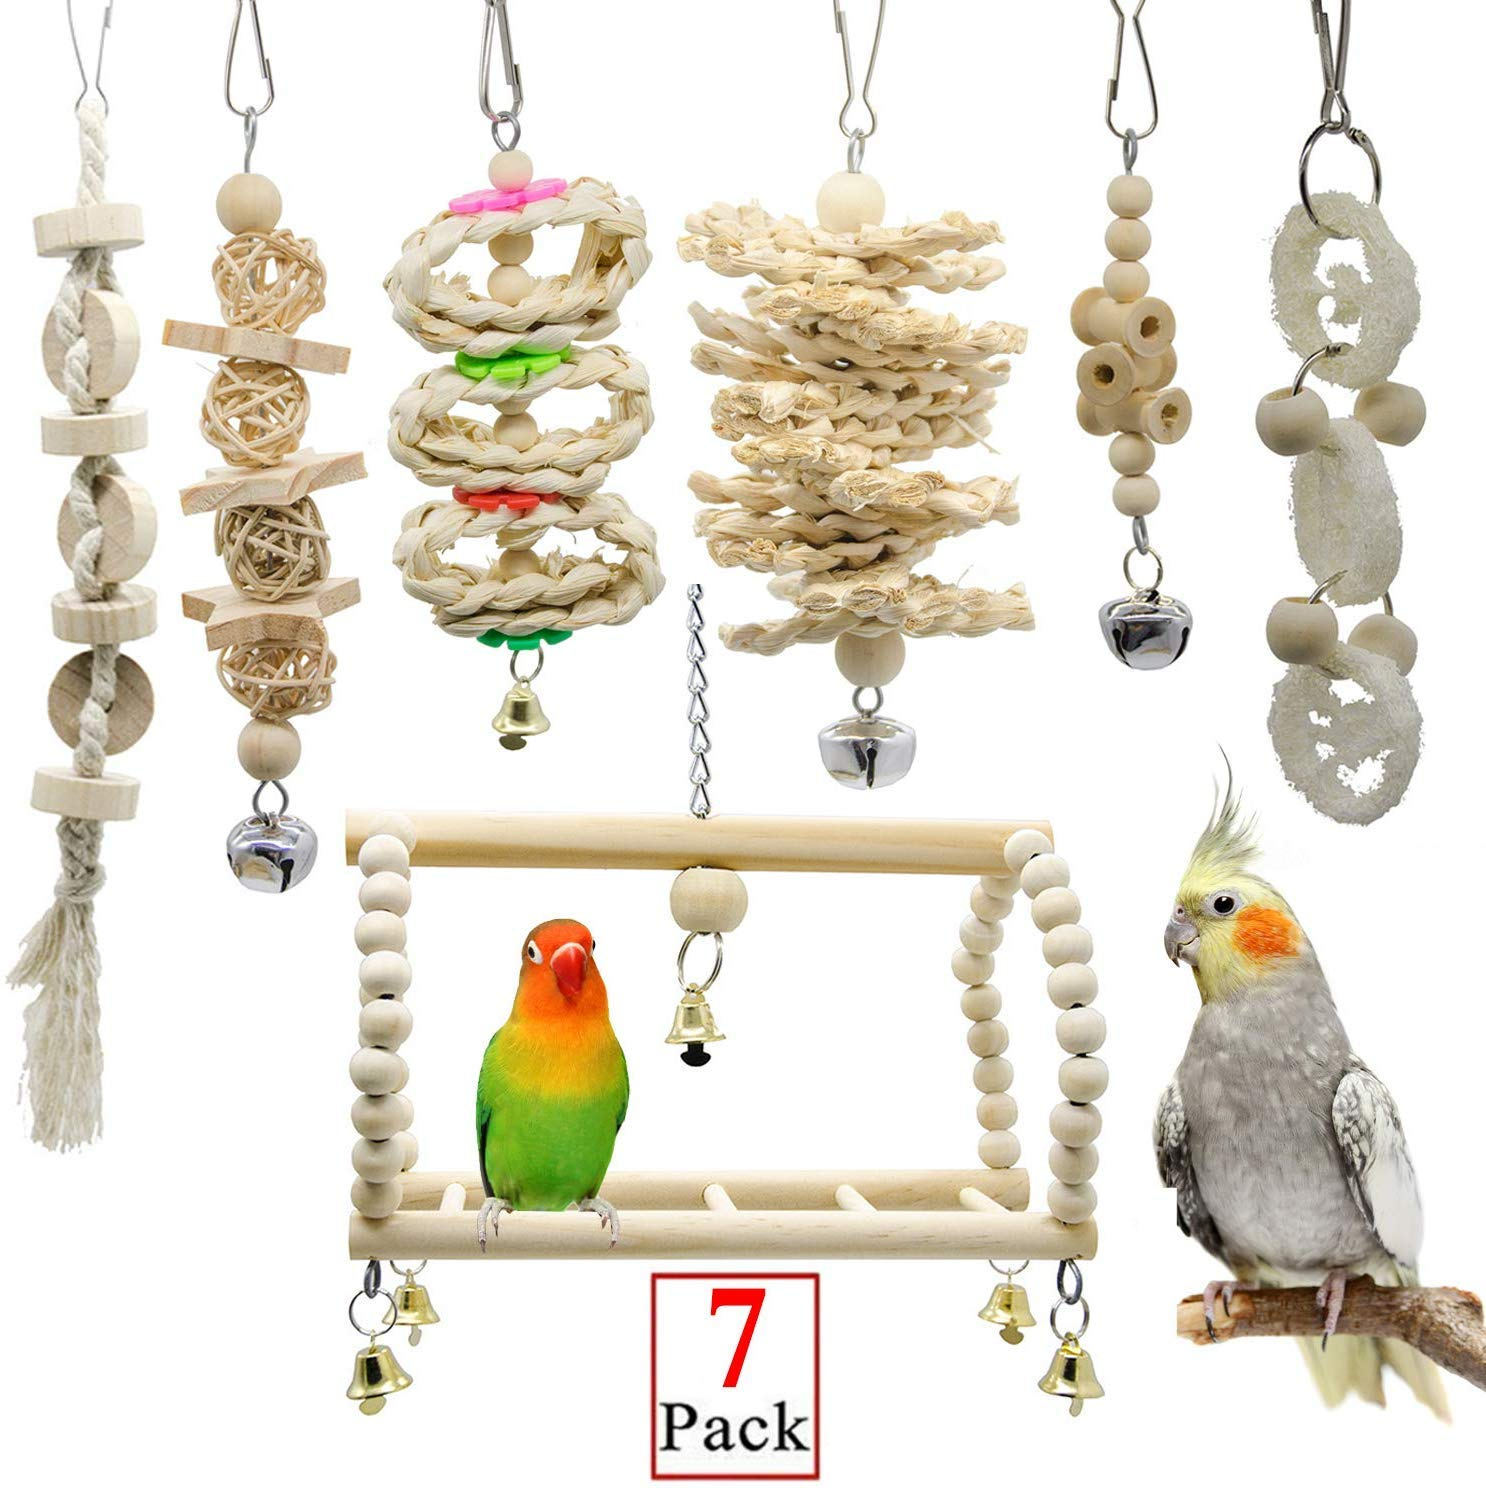 Askyorte Bird Swing Toys - 7 Packs Nature Wood Parrot Hammock Hanging Chewing Toys, Parakeet, Macaws Parrots, Cockatiel, Mynah, Love Birds Cages Decorative Accessories